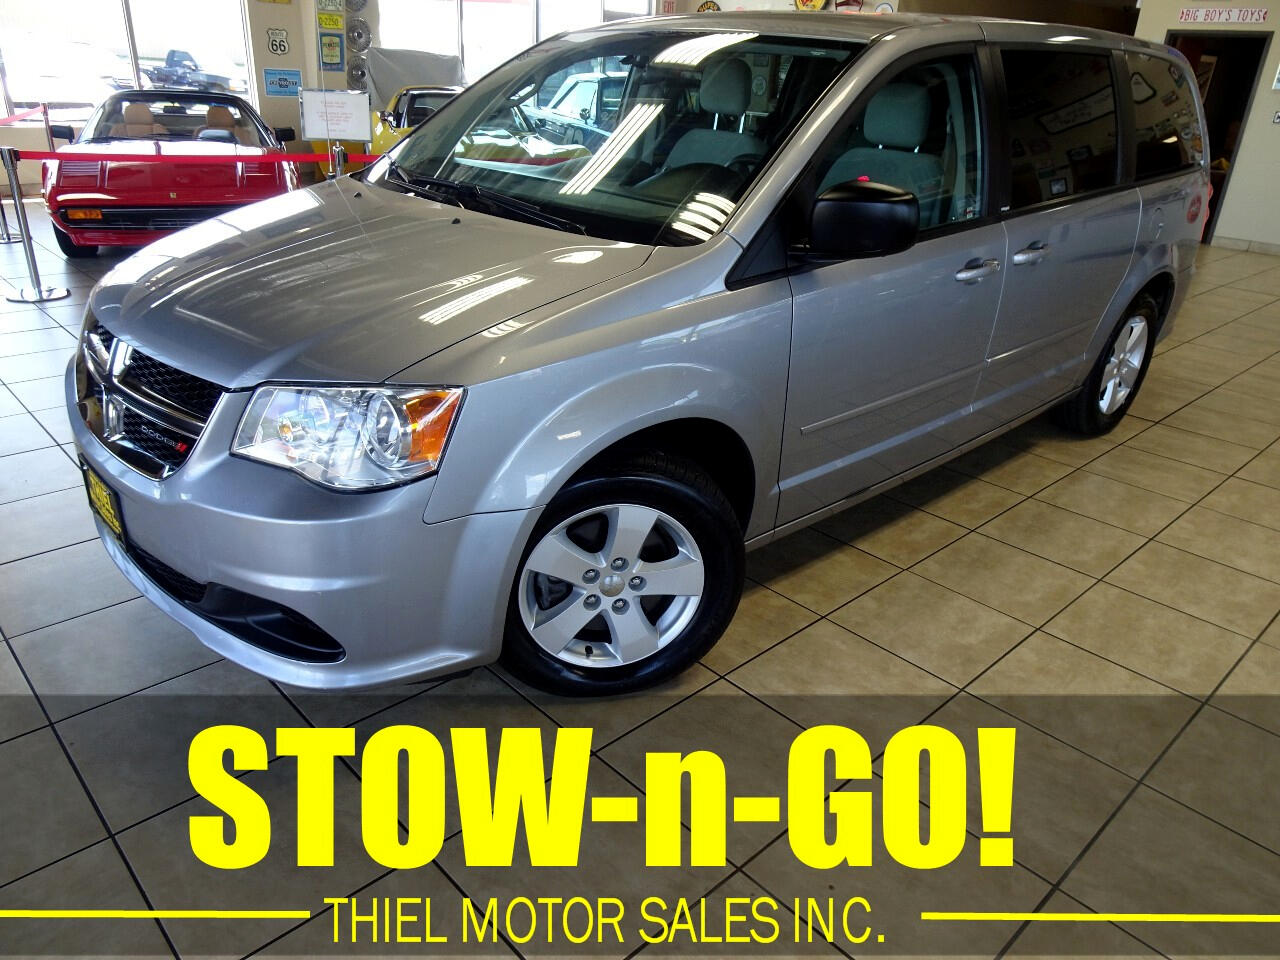 2013 Dodge Grand Caravan SE with STOW-n-GO